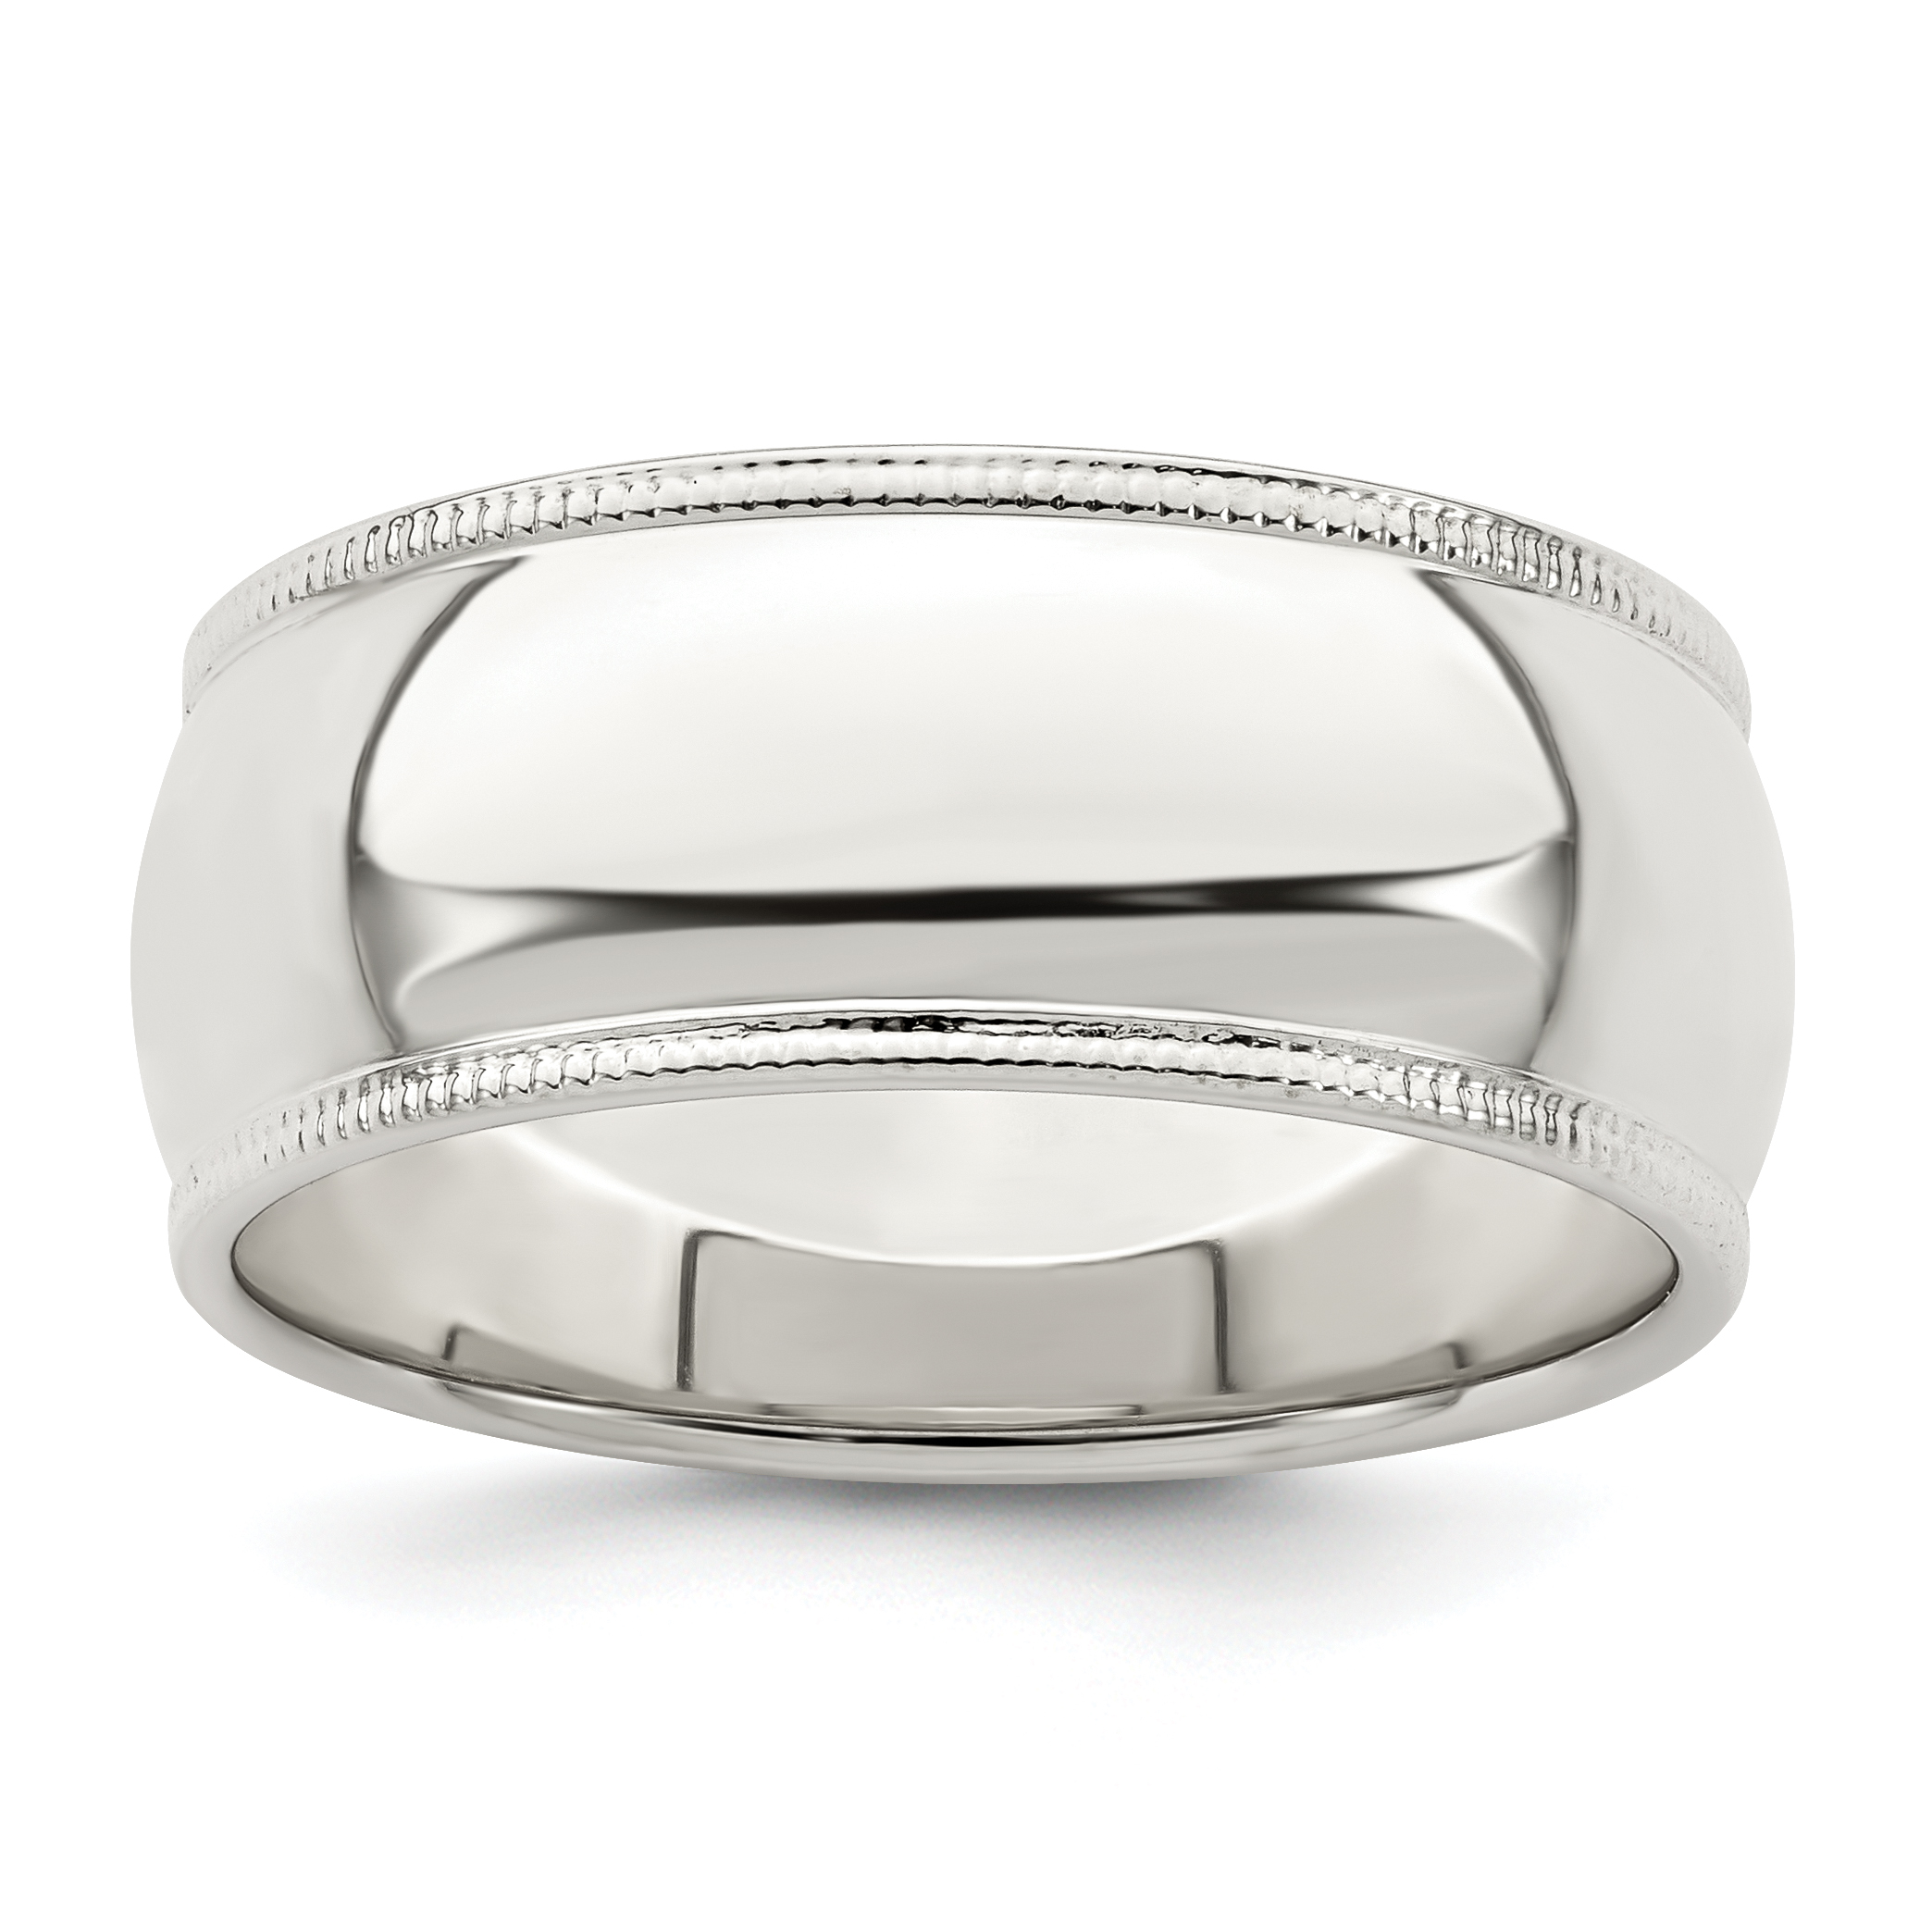 Wedding Bands Classic Bands Domed Bands Sterling Silver 5mm Half-Round Band Size 12